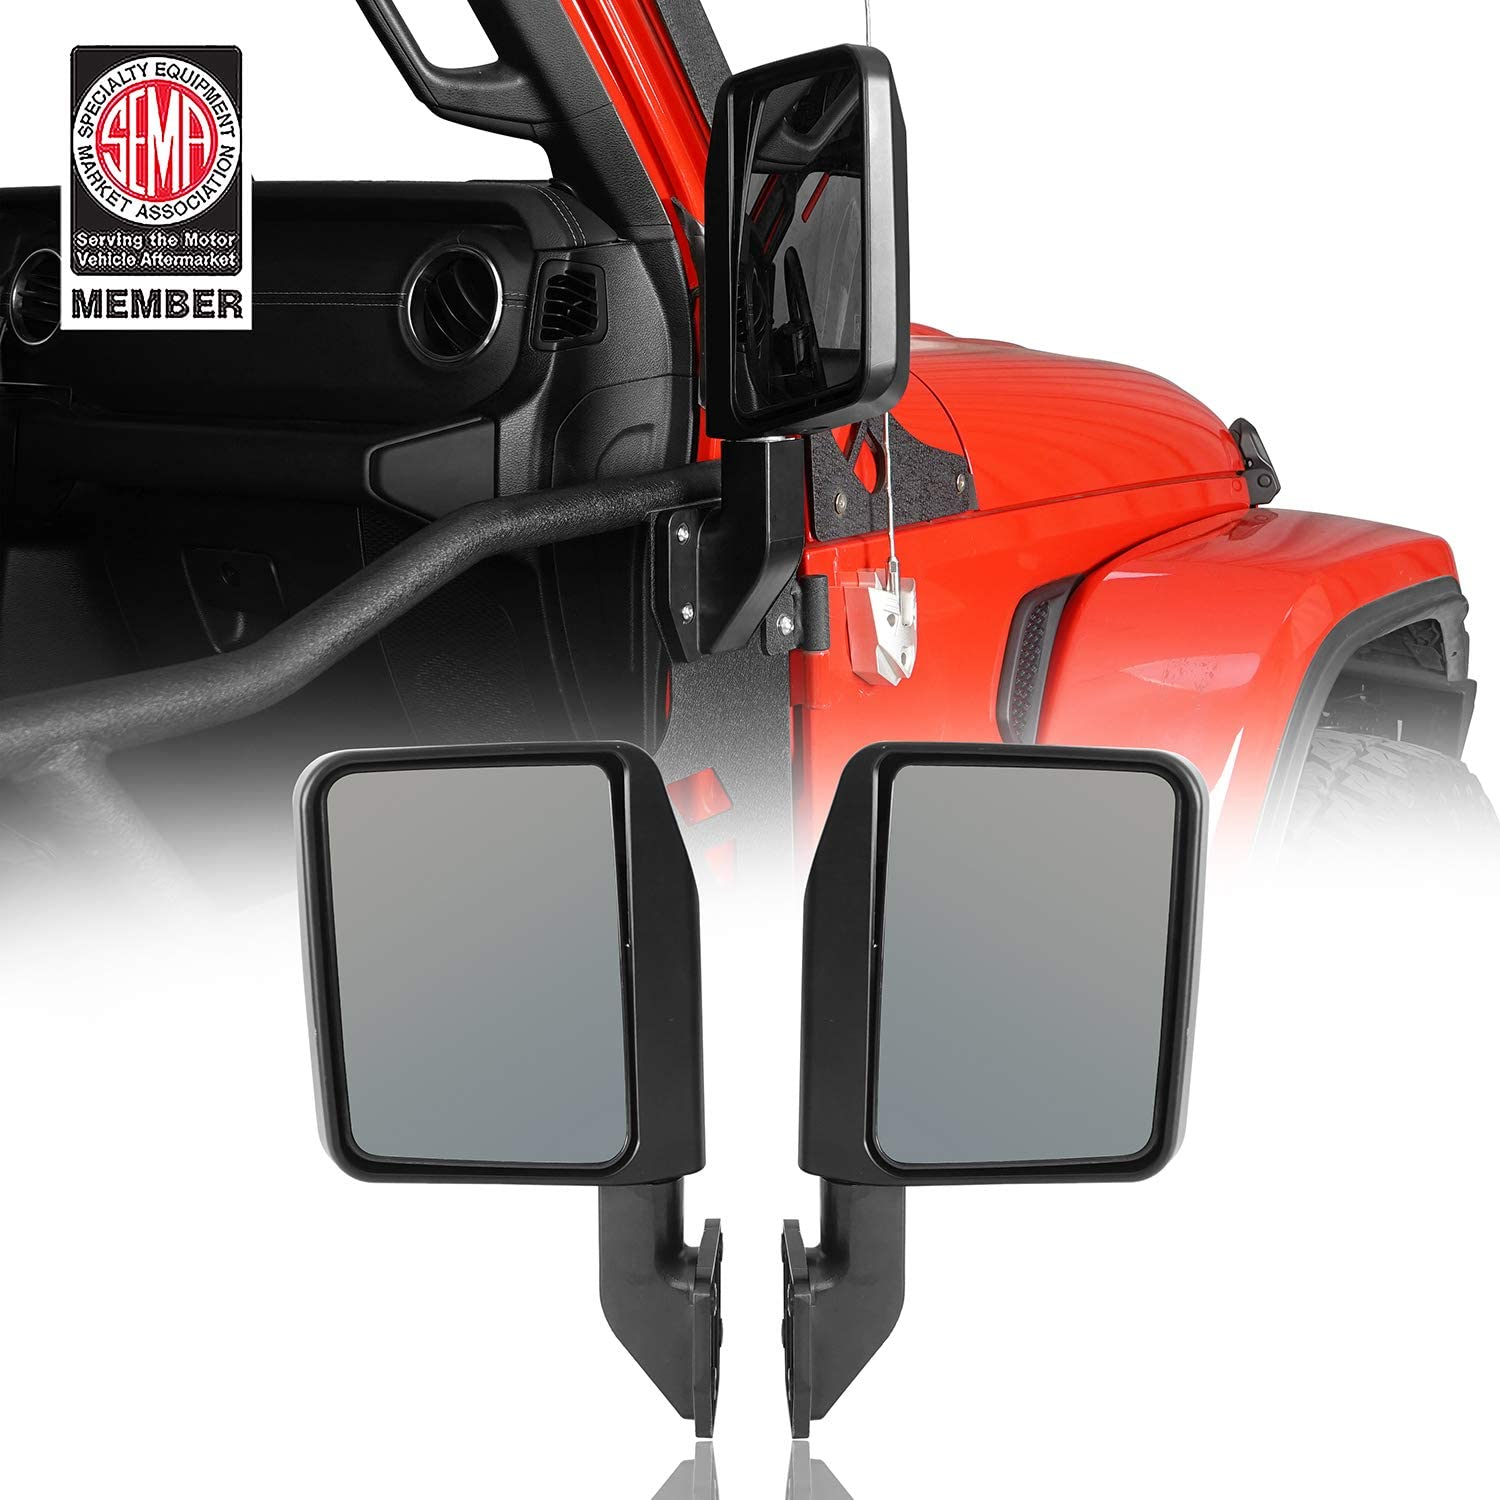 Hooke Road Wrangler Mirrors for Half Doors Compatible with Jeep Wrangler TJ JK JL 97-21 | Gladiator JT - 1 Pair, Textured Black